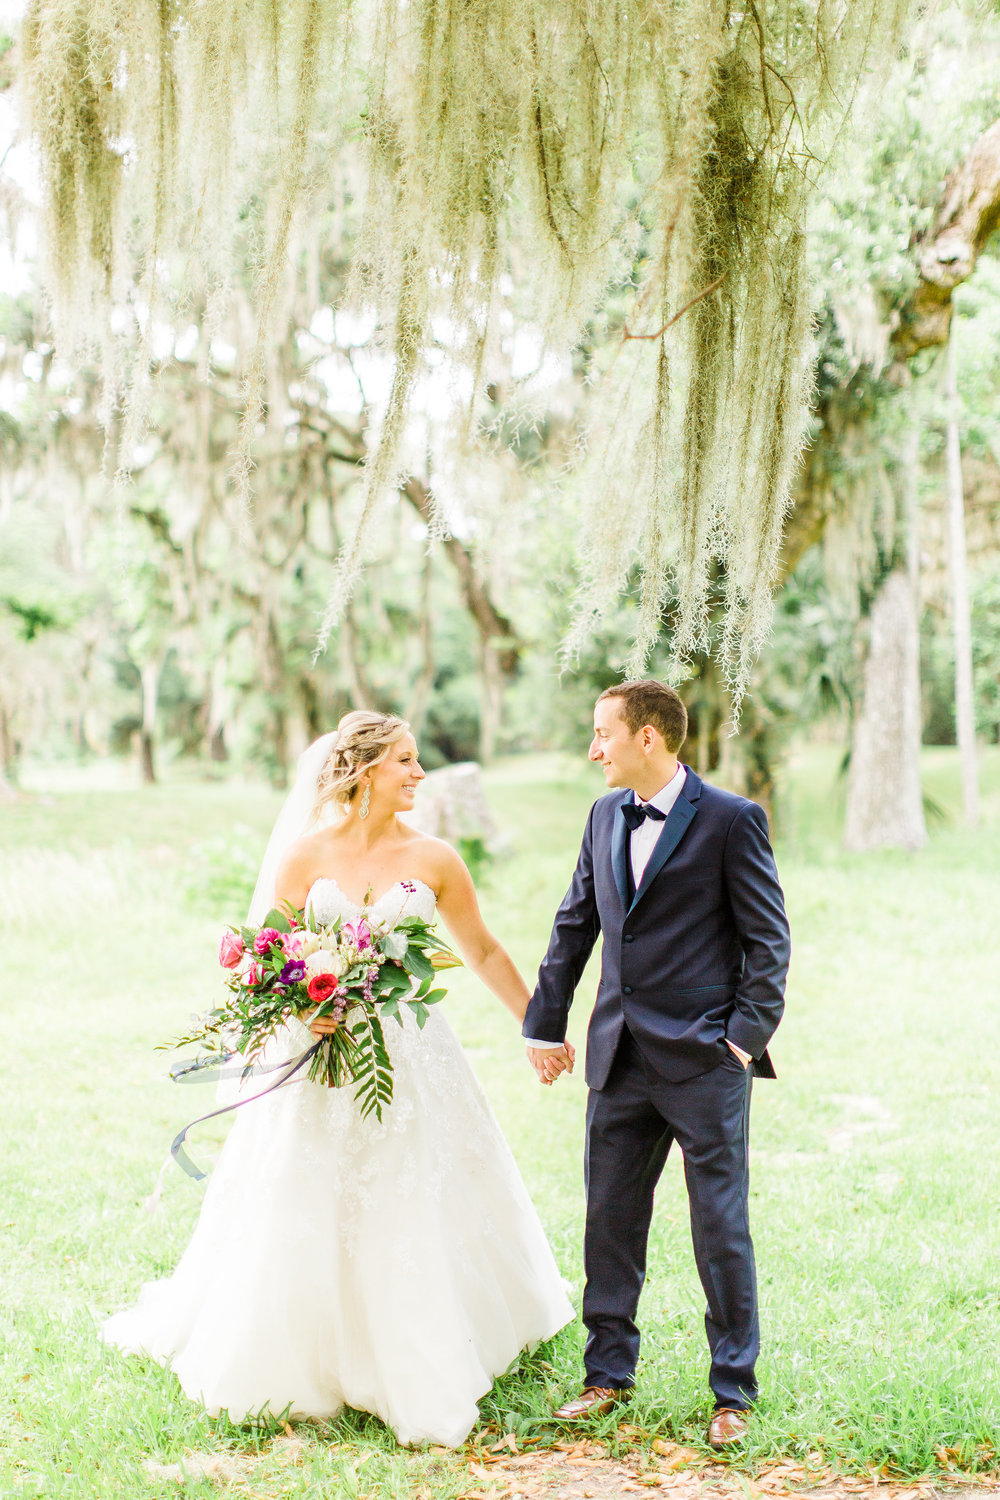 savannah-bridal-shop-i-and-b-couple-gretchen-and-alex-fun-and-unique-tropical-wedding-at-captains-bluff-st-simons-island-wedding-marianne-lucille-photography-12.jpg